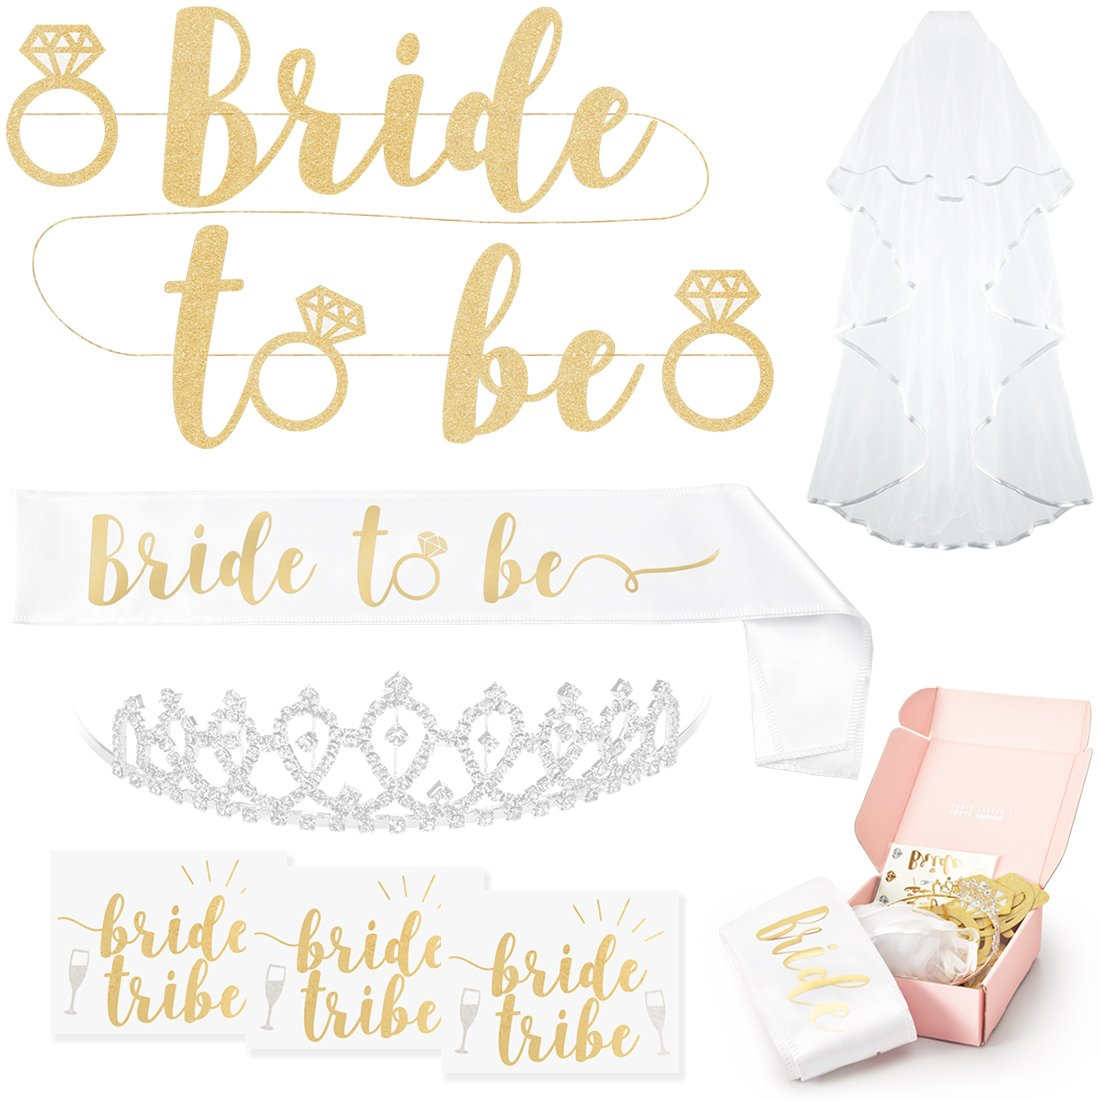 xo, Fetti Bachelorette Party Bride To Be Decorations Kit - Bridal Shower Supplies | Sash For Bride, Rhinestone Tiara, Gold and Silver Banner, Veil + Bride Tribe Flash Tattoos by xo, Fetti